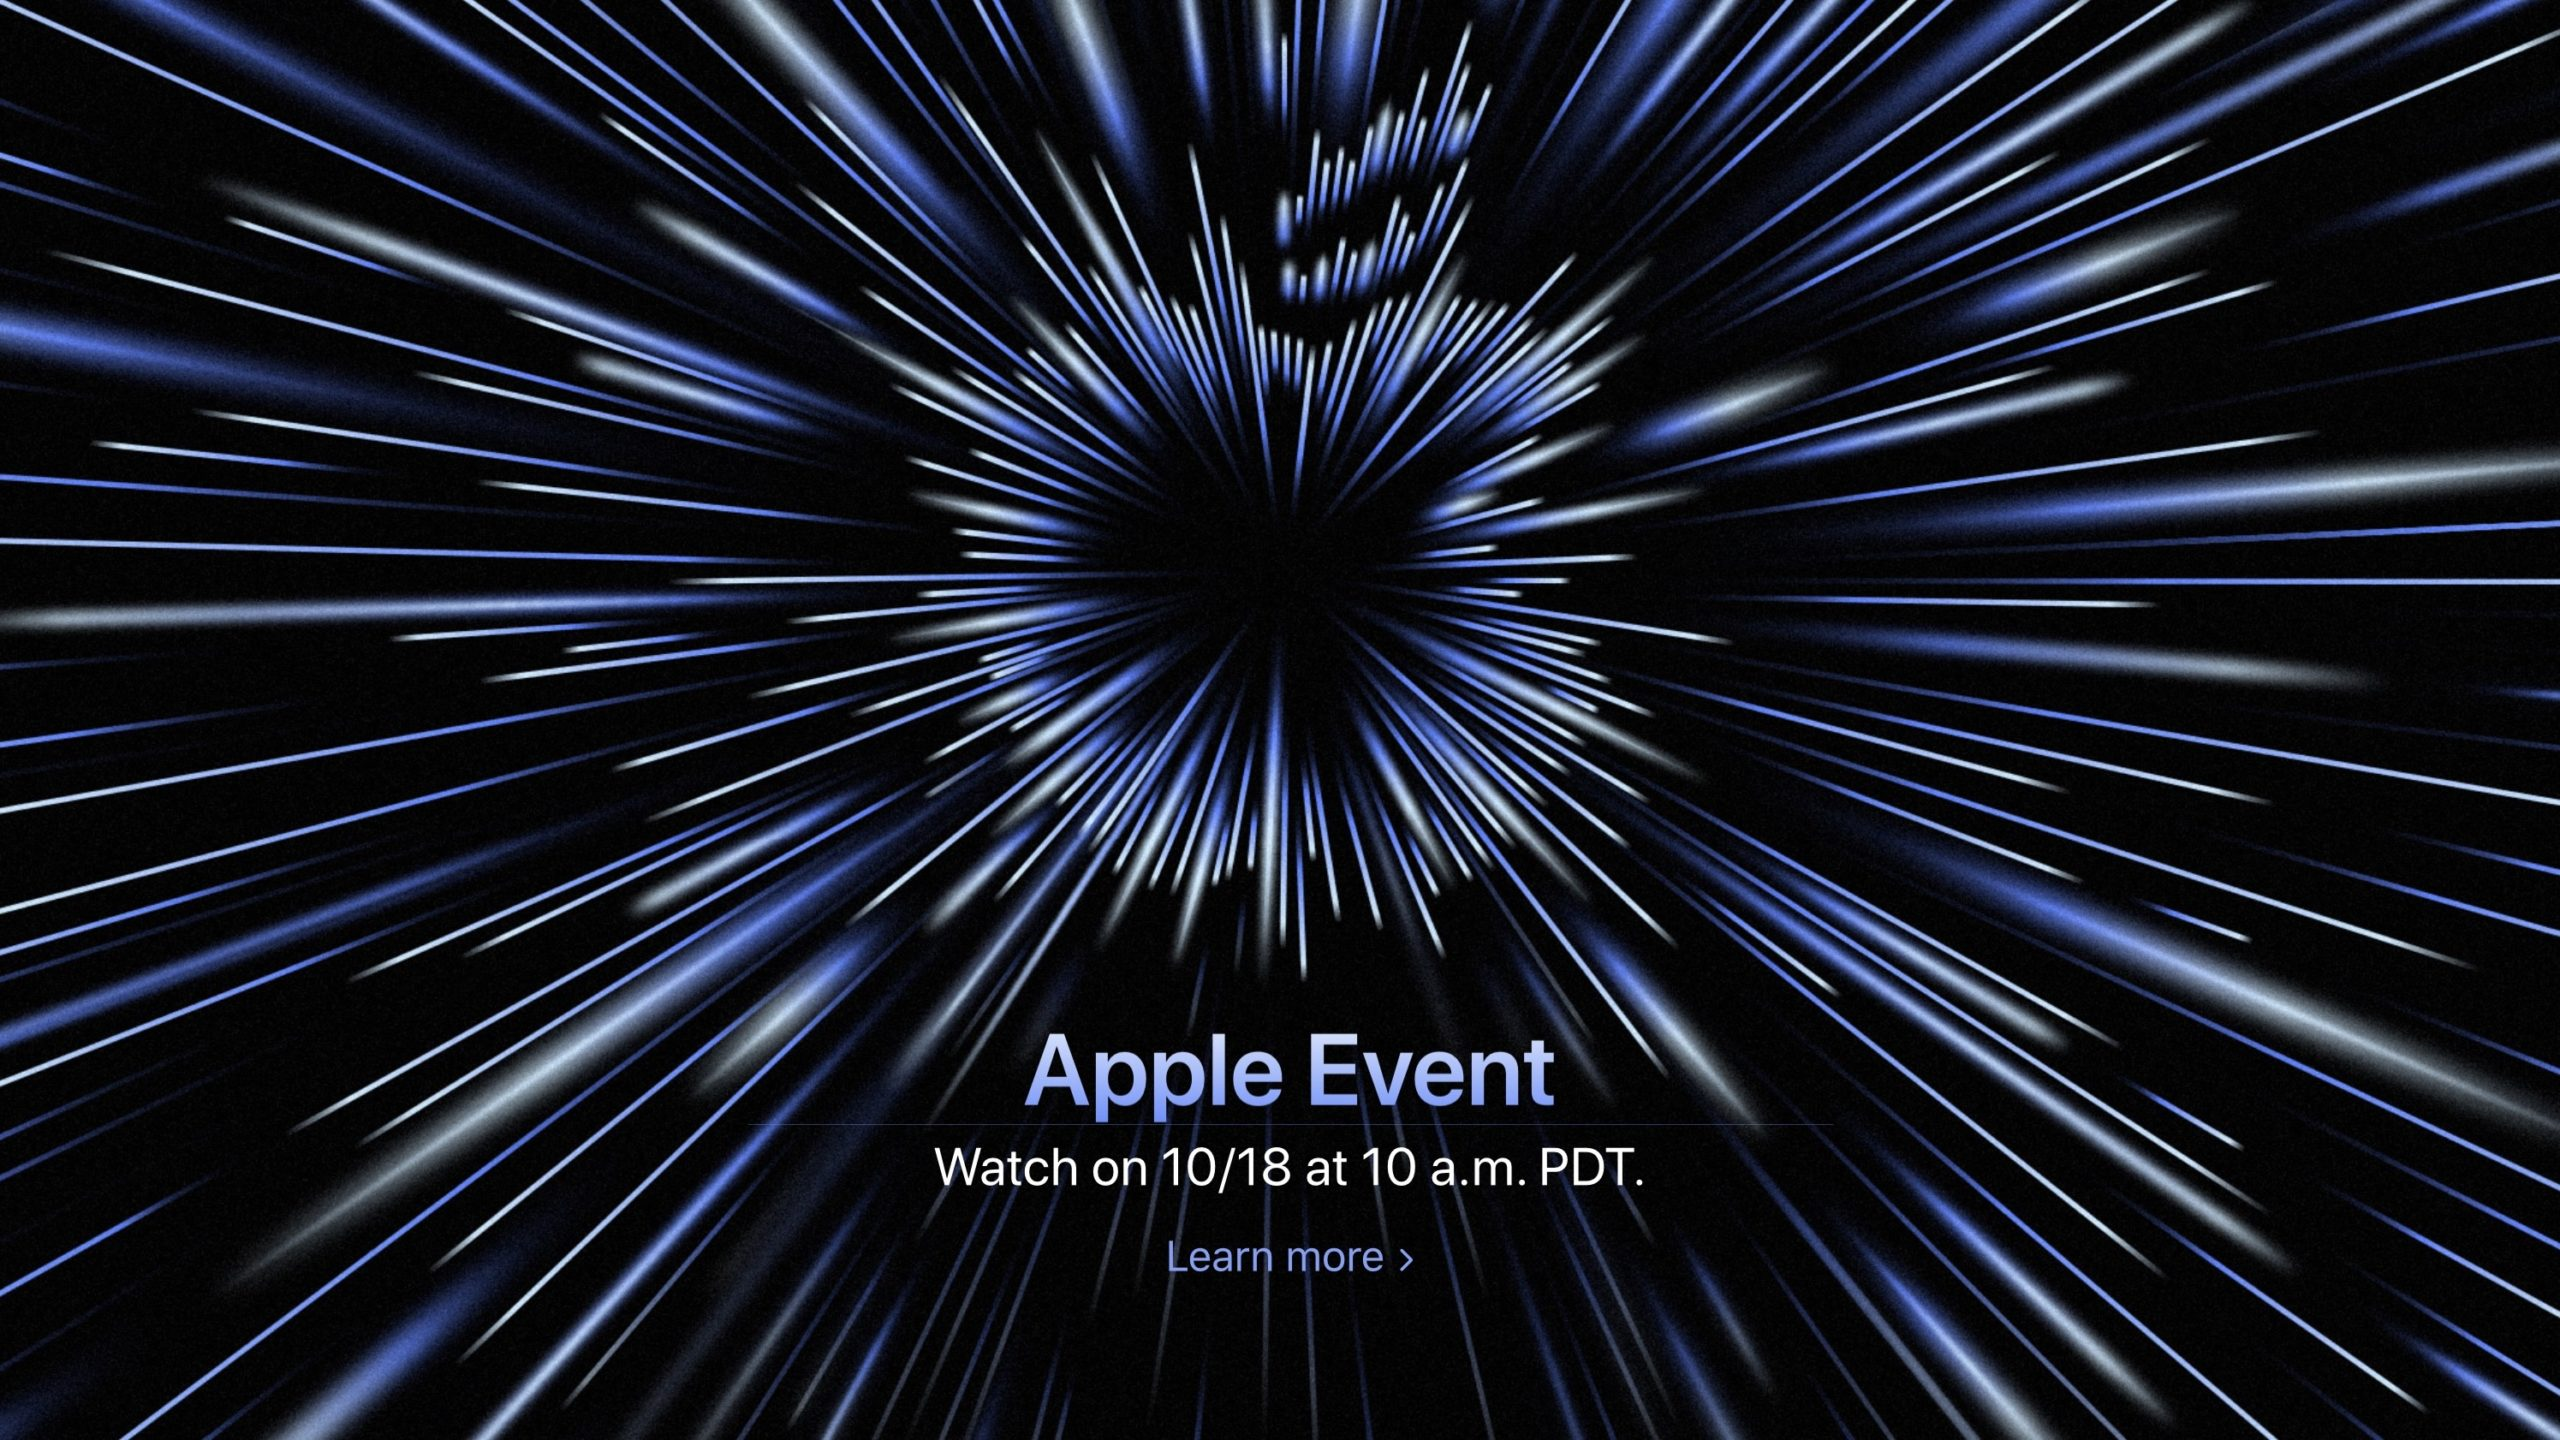 Apple Finally Announces October 18th Event, Expected To Introduce New Macs